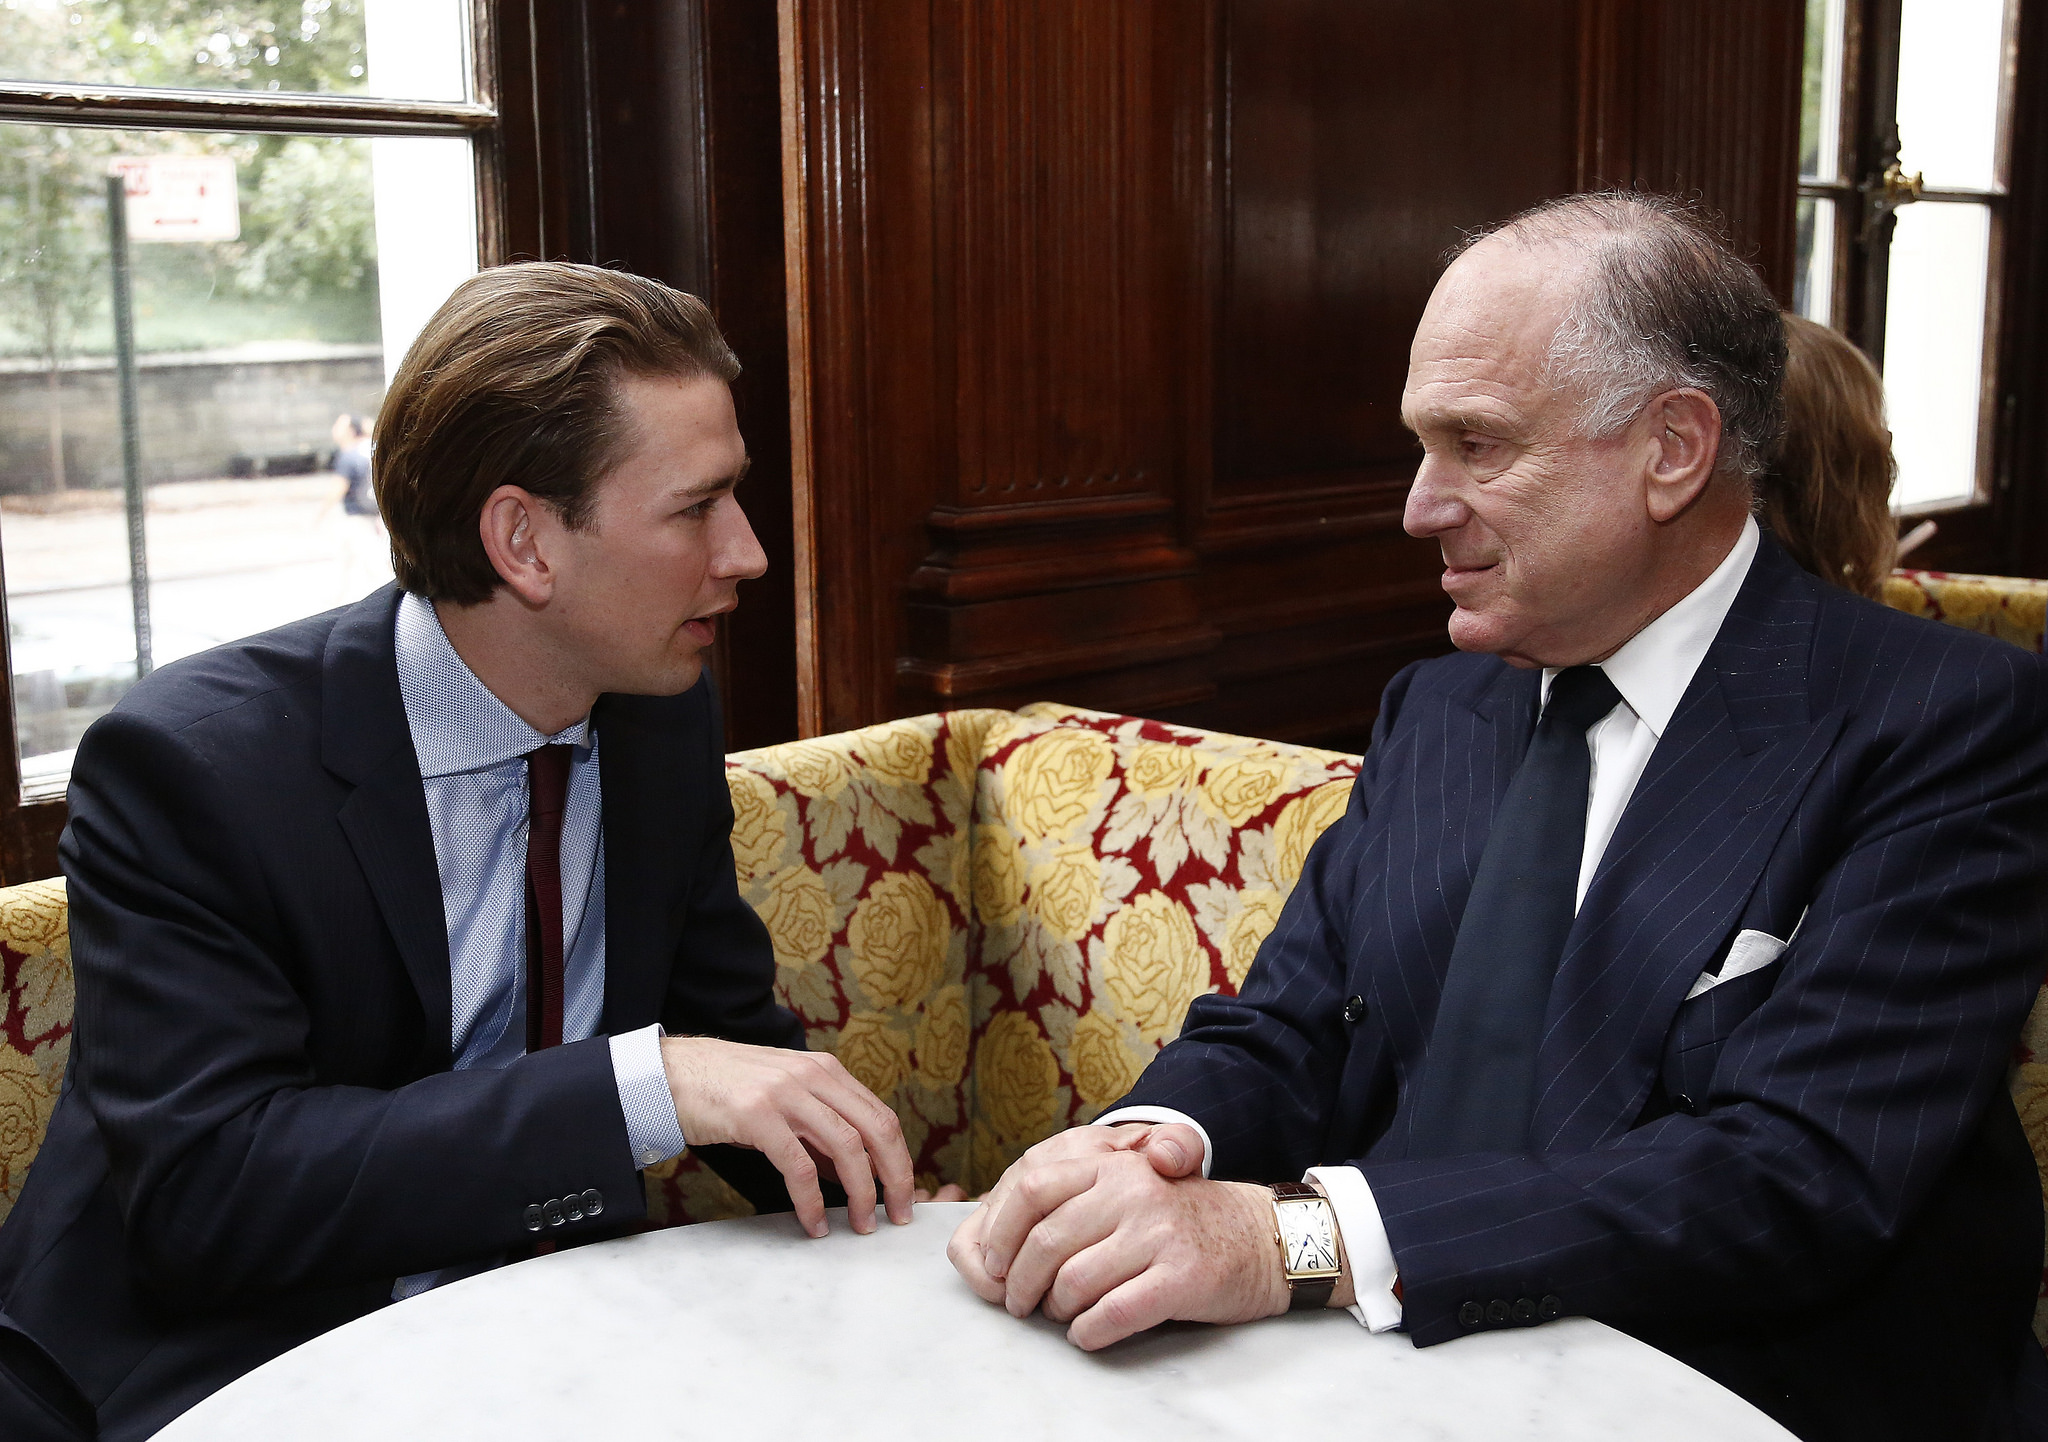 Foreign Minister Kurz with the President of the World Jewish Congress and former U.S. Ambassador to Austria, Ronald Lauder